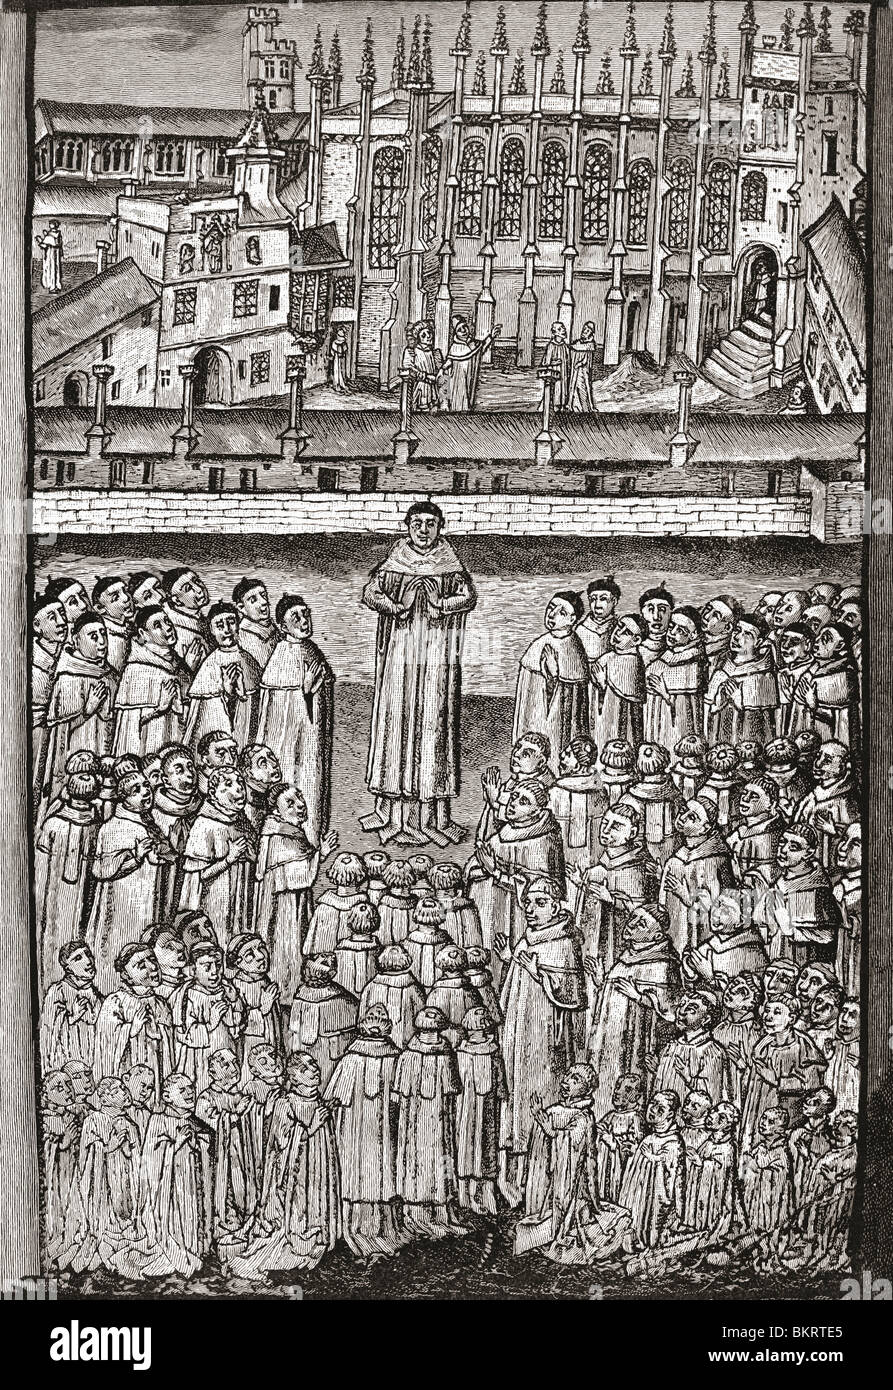 New College, Oxford, England and its one hundred clerks c.1453. - Stock Image